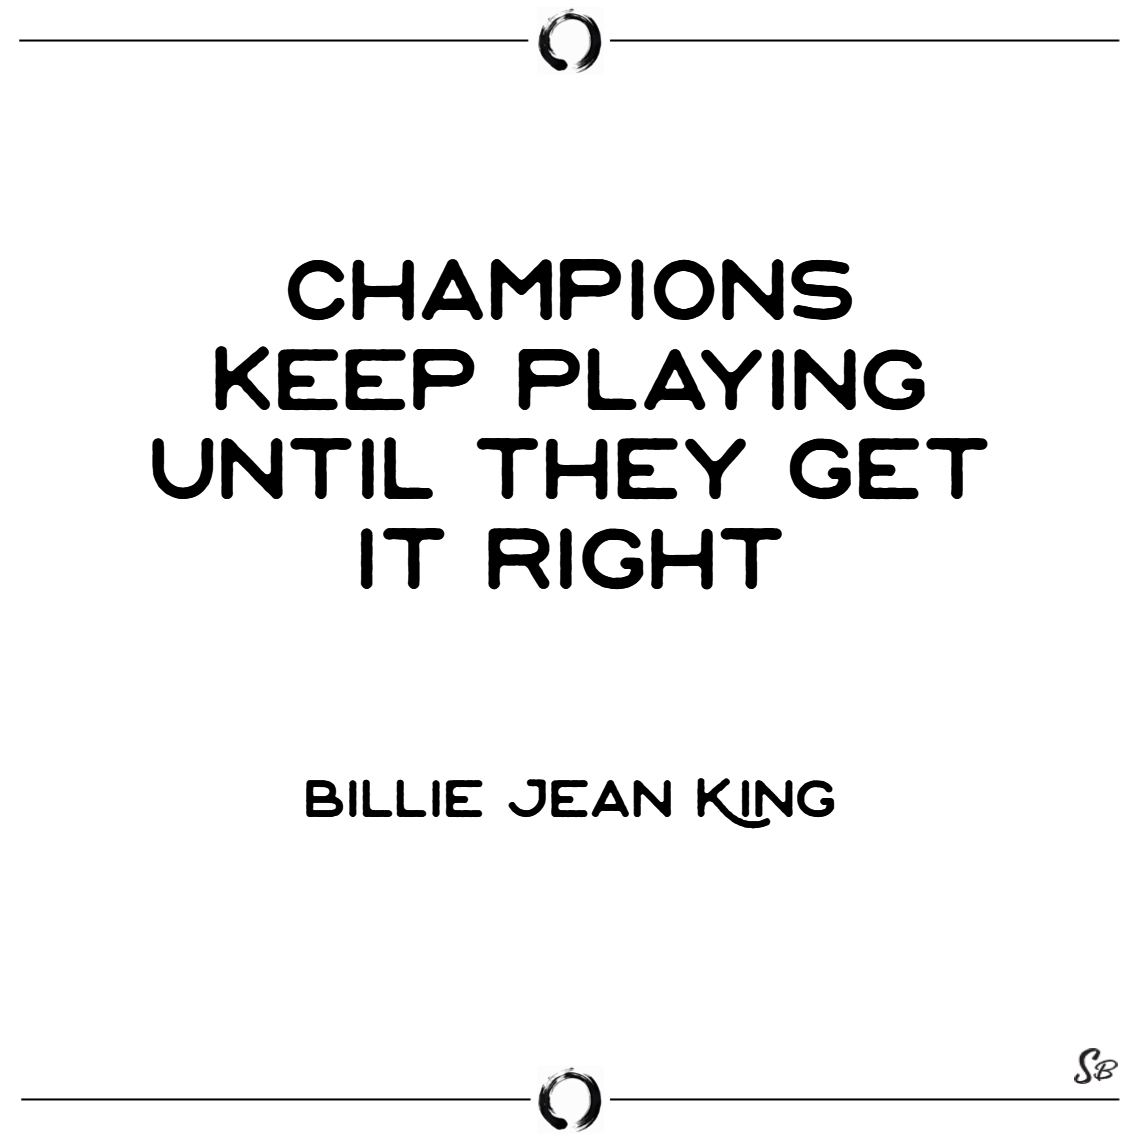 Champions keep playing until they get it right. –